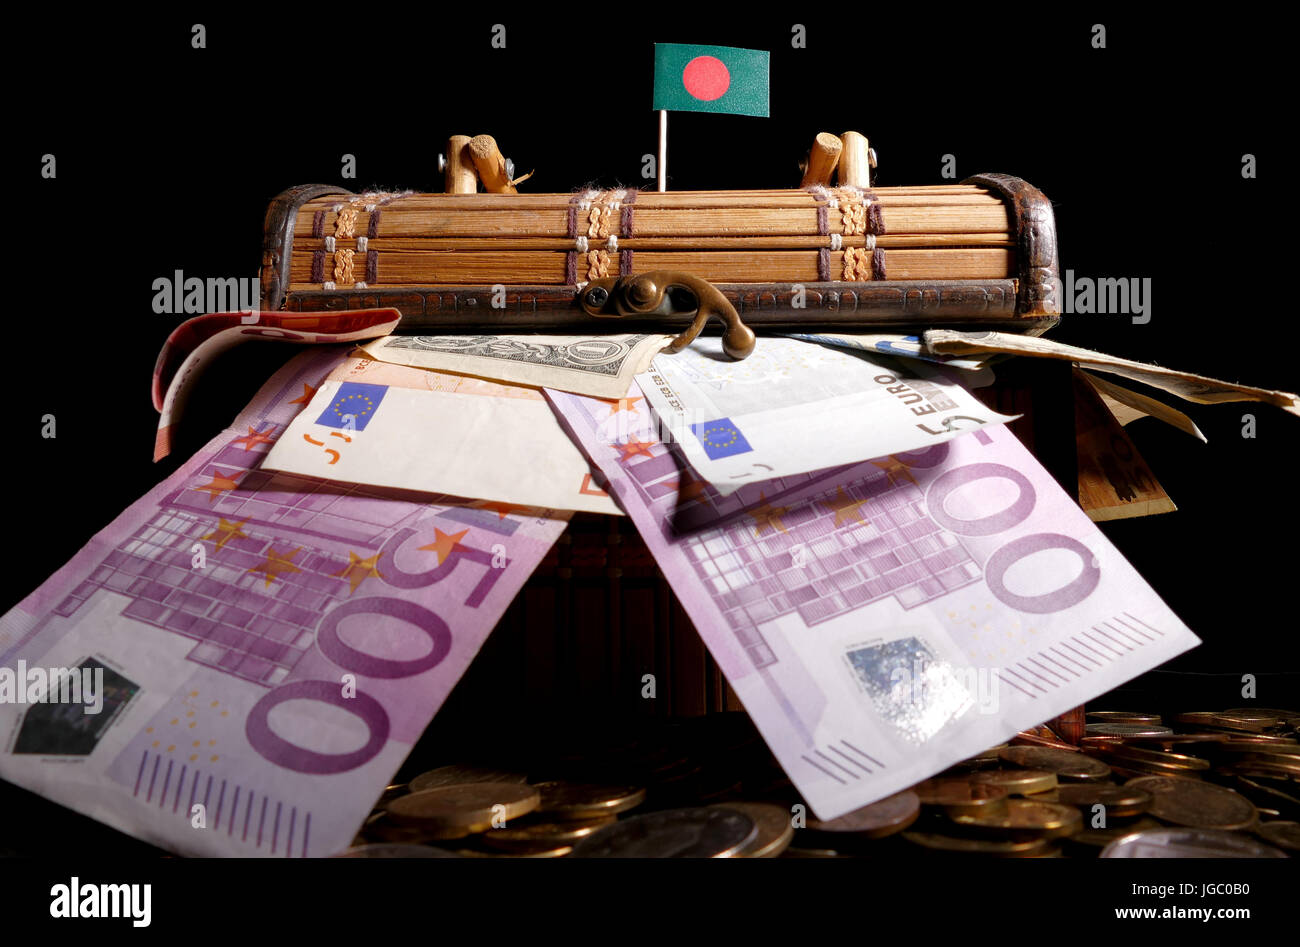 Bangladeshi flag on top of crate full of money - Stock Image